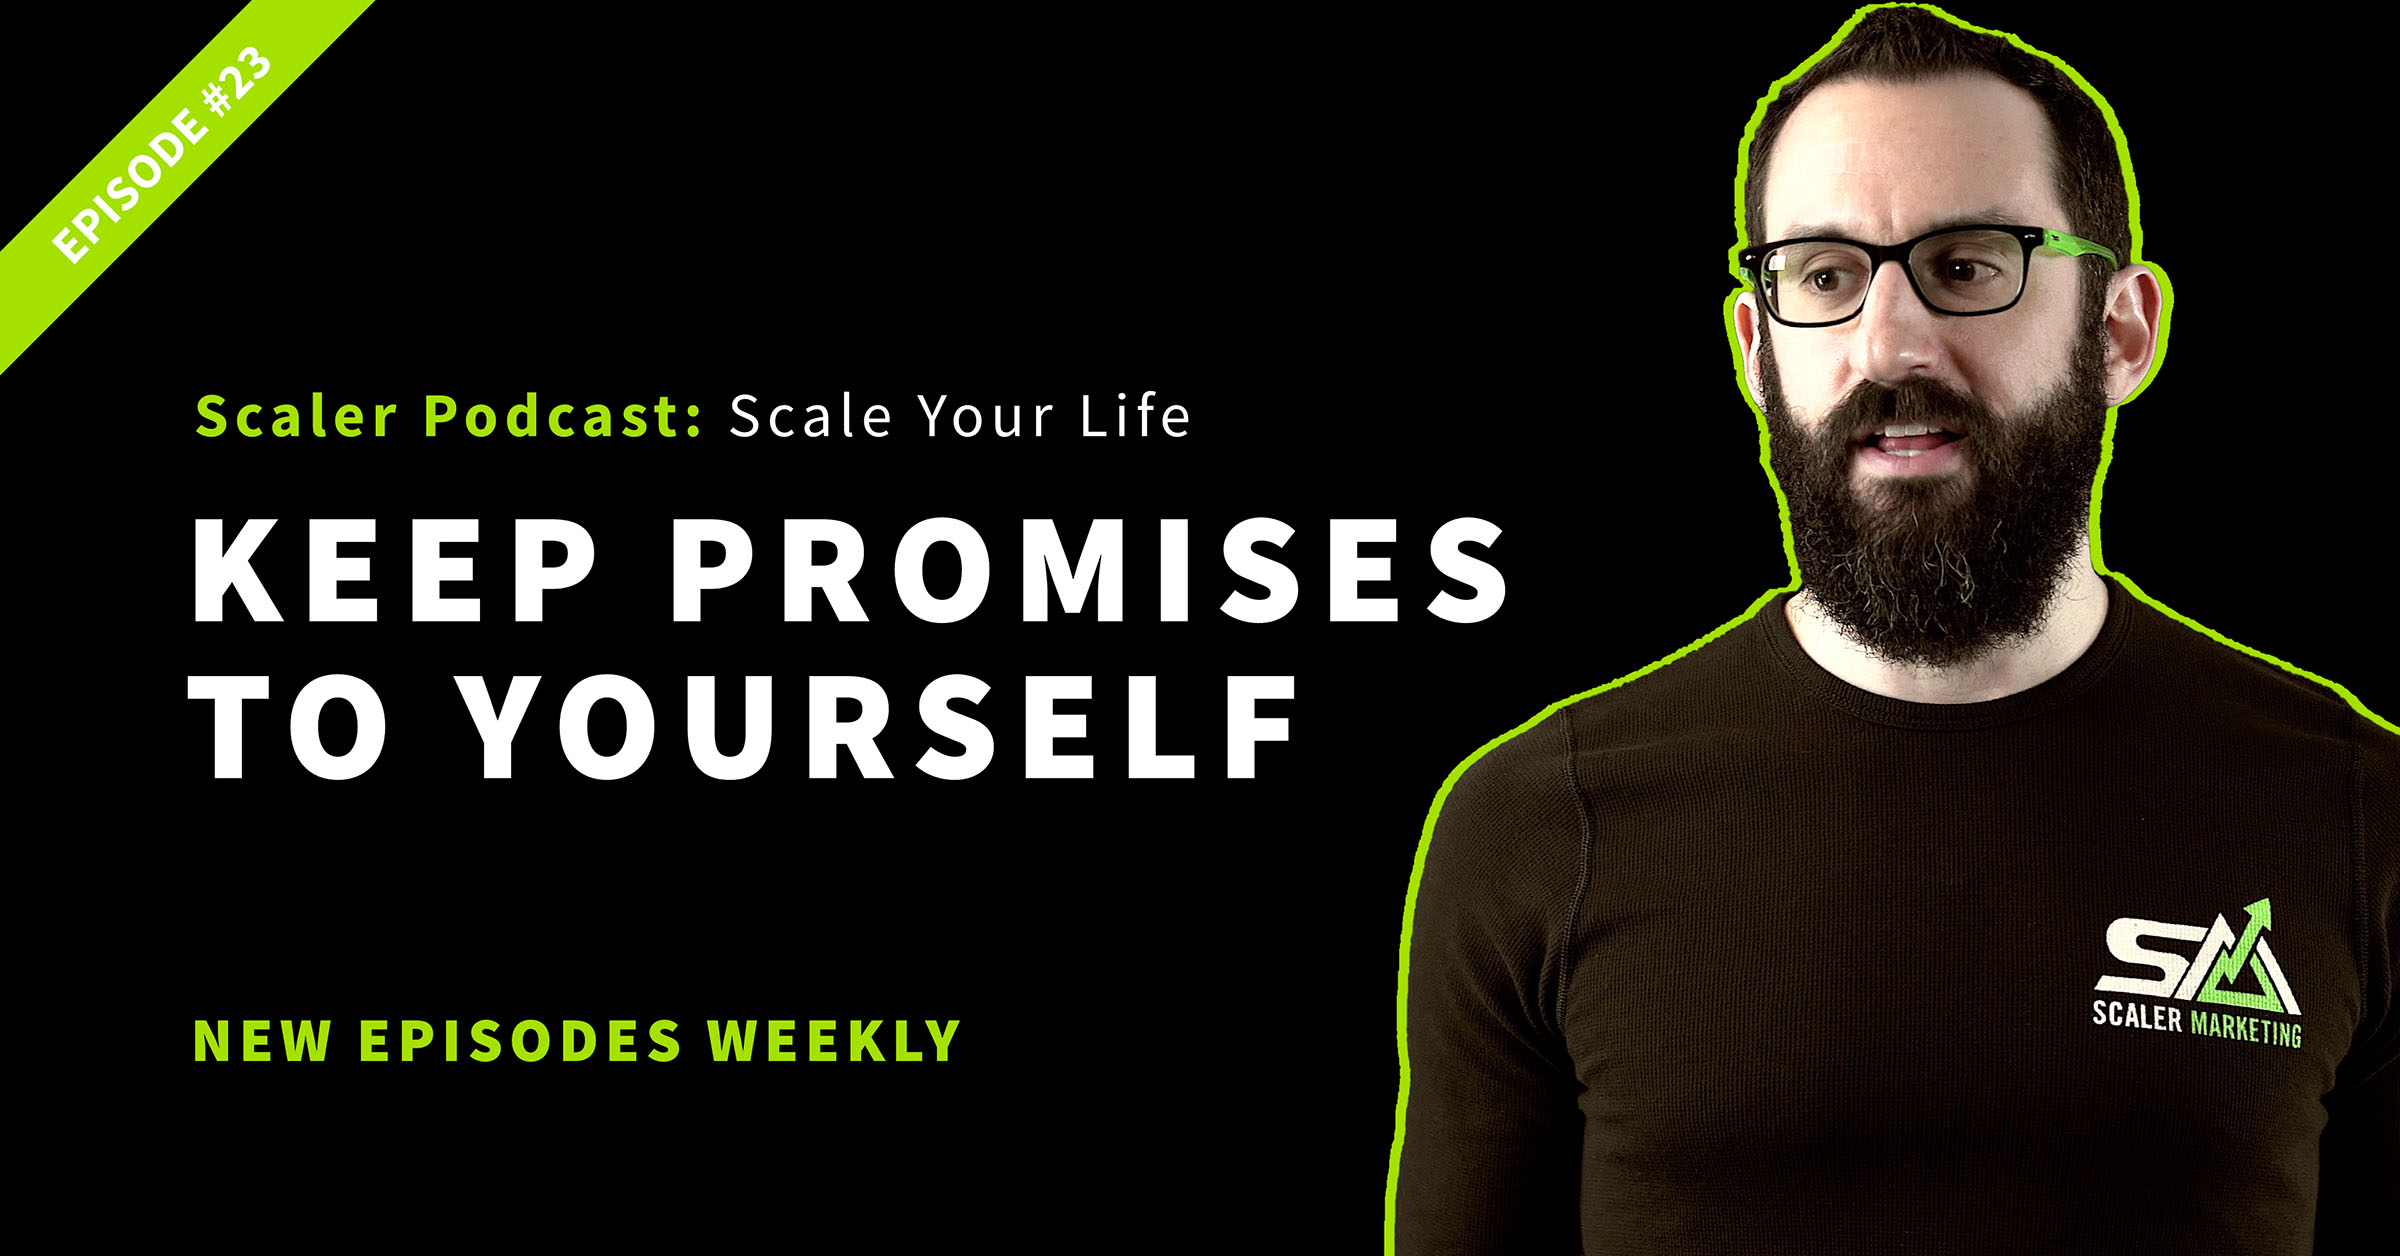 Episode 23 - Keep Promises To Yourself